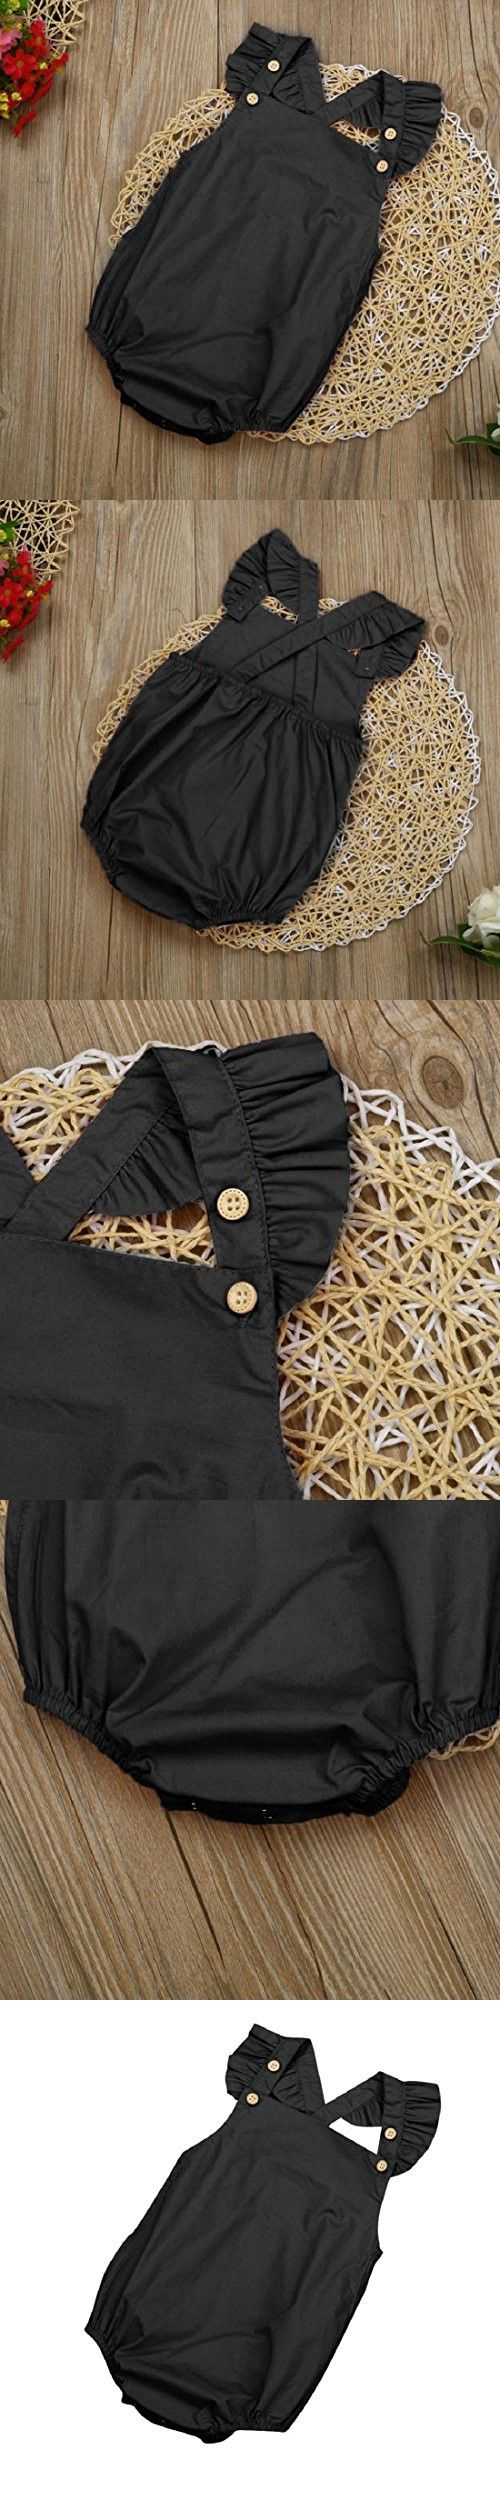 GONKOMA Baby Girls Solid Color Sleeveless Bodysuit Jumpsuit Romper Clothes (6-Months, Black)